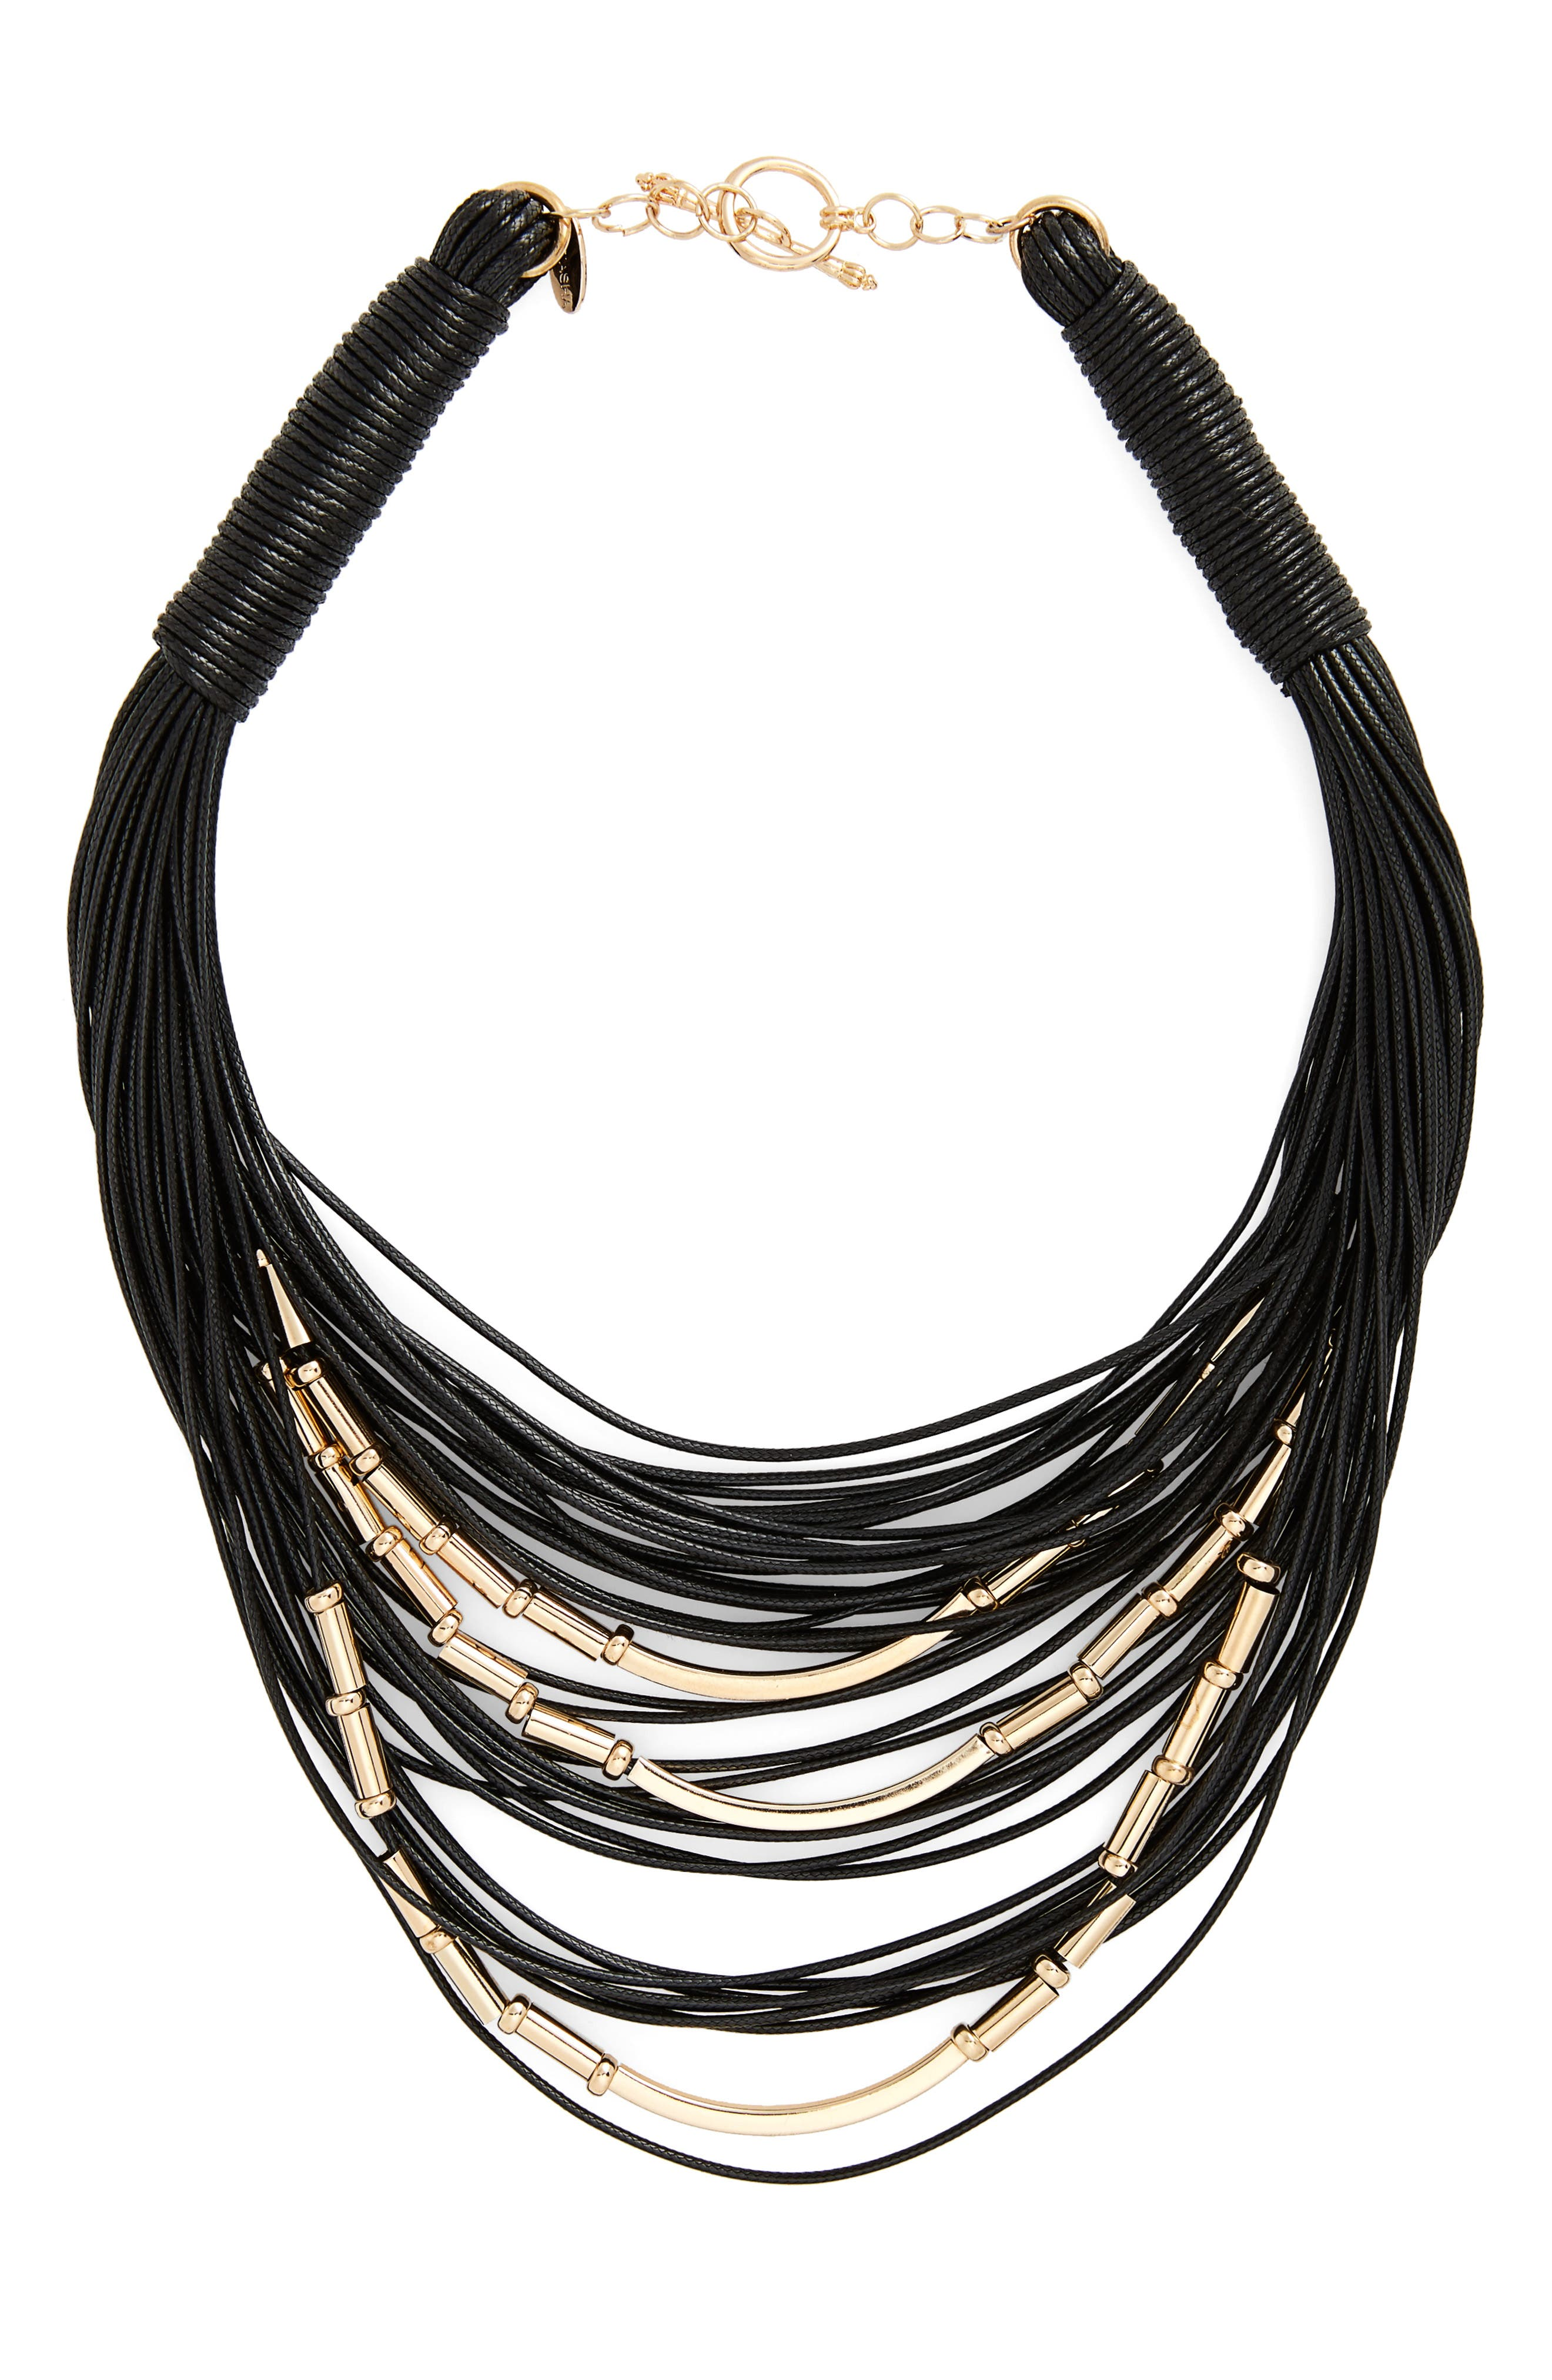 Beaded Multistrand Necklace,                             Main thumbnail 1, color,                             001